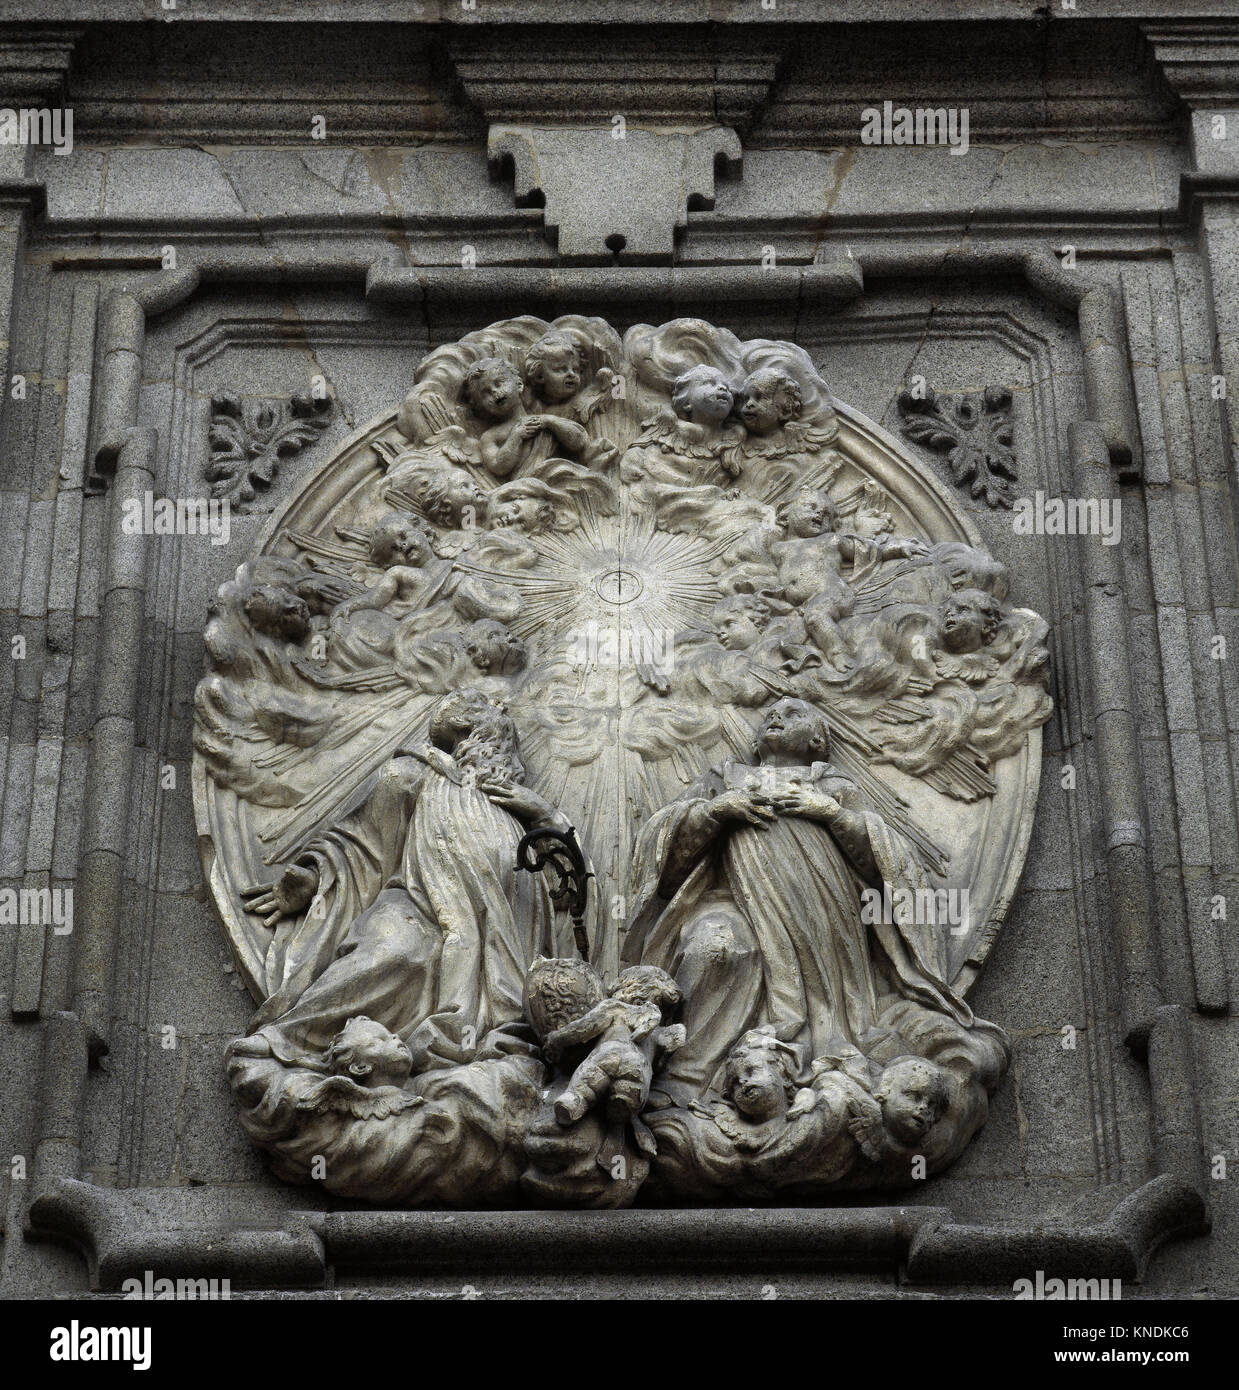 Saint Basil the Great (329-379) and Saint Benedict of Nursia (480-543) before the Eucharist. Relief. Facade of archiepiscopal - Stock Image